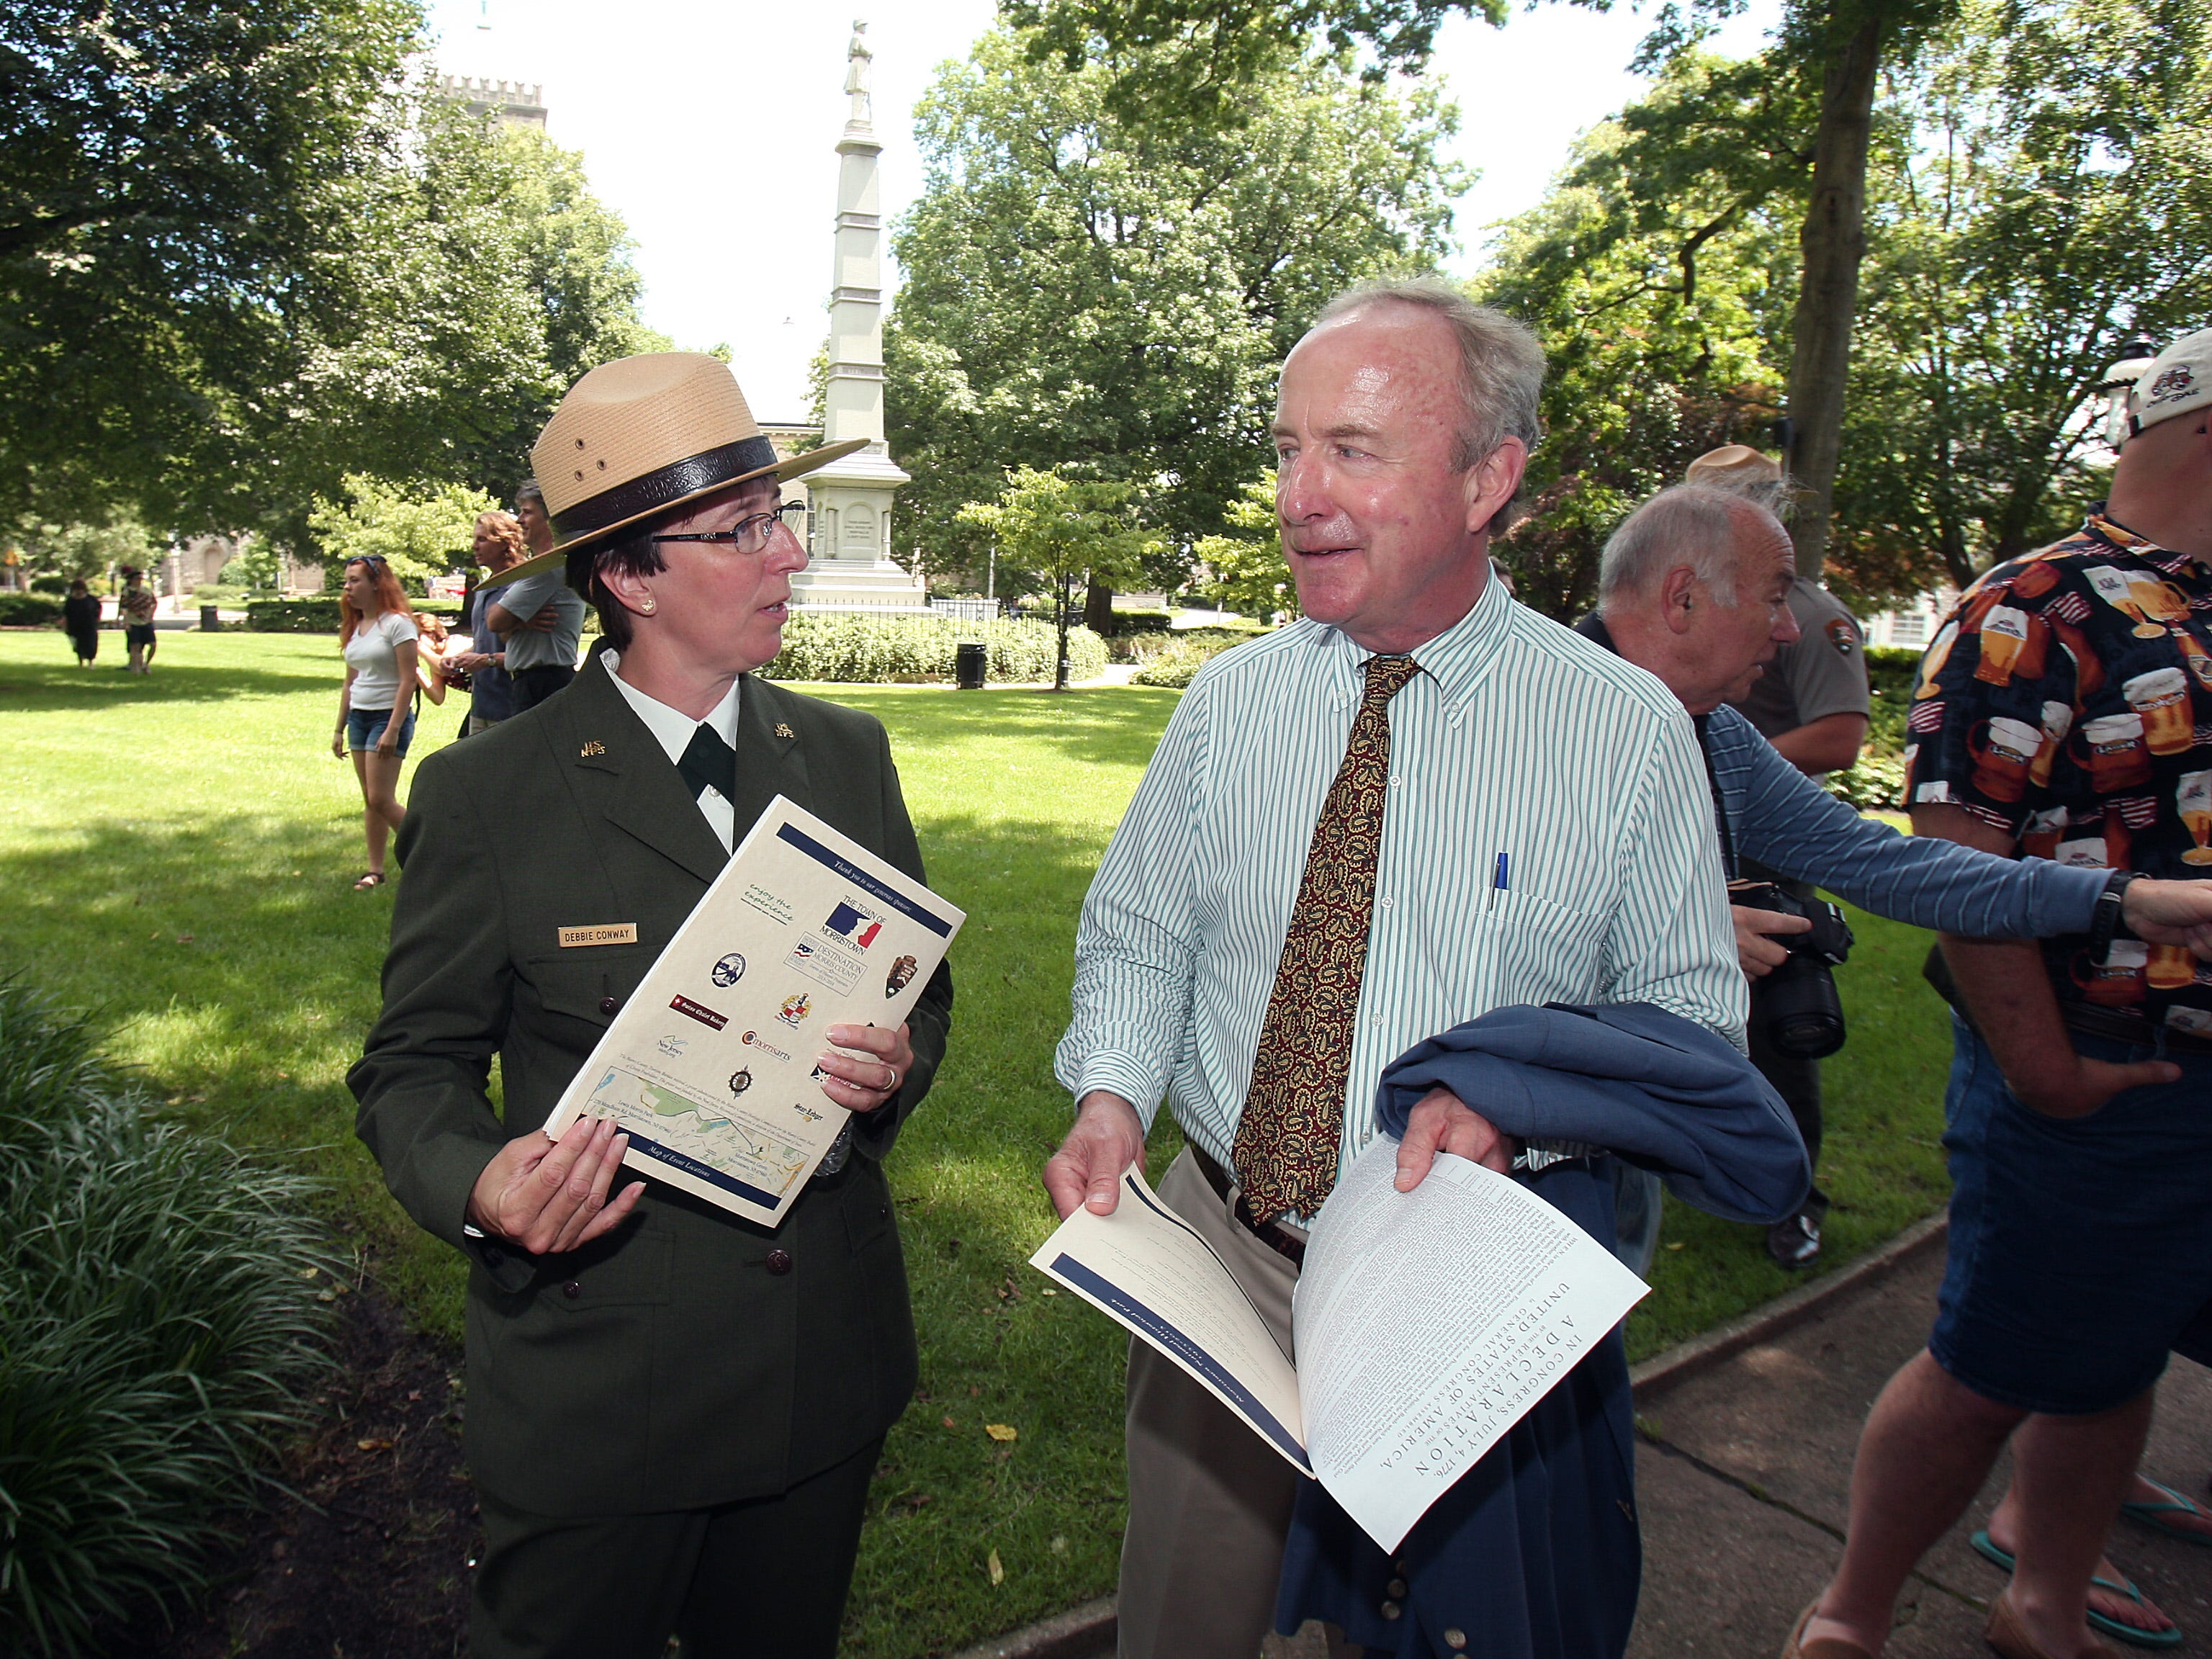 Morristown, NJ--July 4, 2013---Park Ranger Thomas J. Winslow reads the Declaration of Independence on the Morristown Green in celebration of Independence Day as well as the 80th anniversary of Morristown National Historical Park.